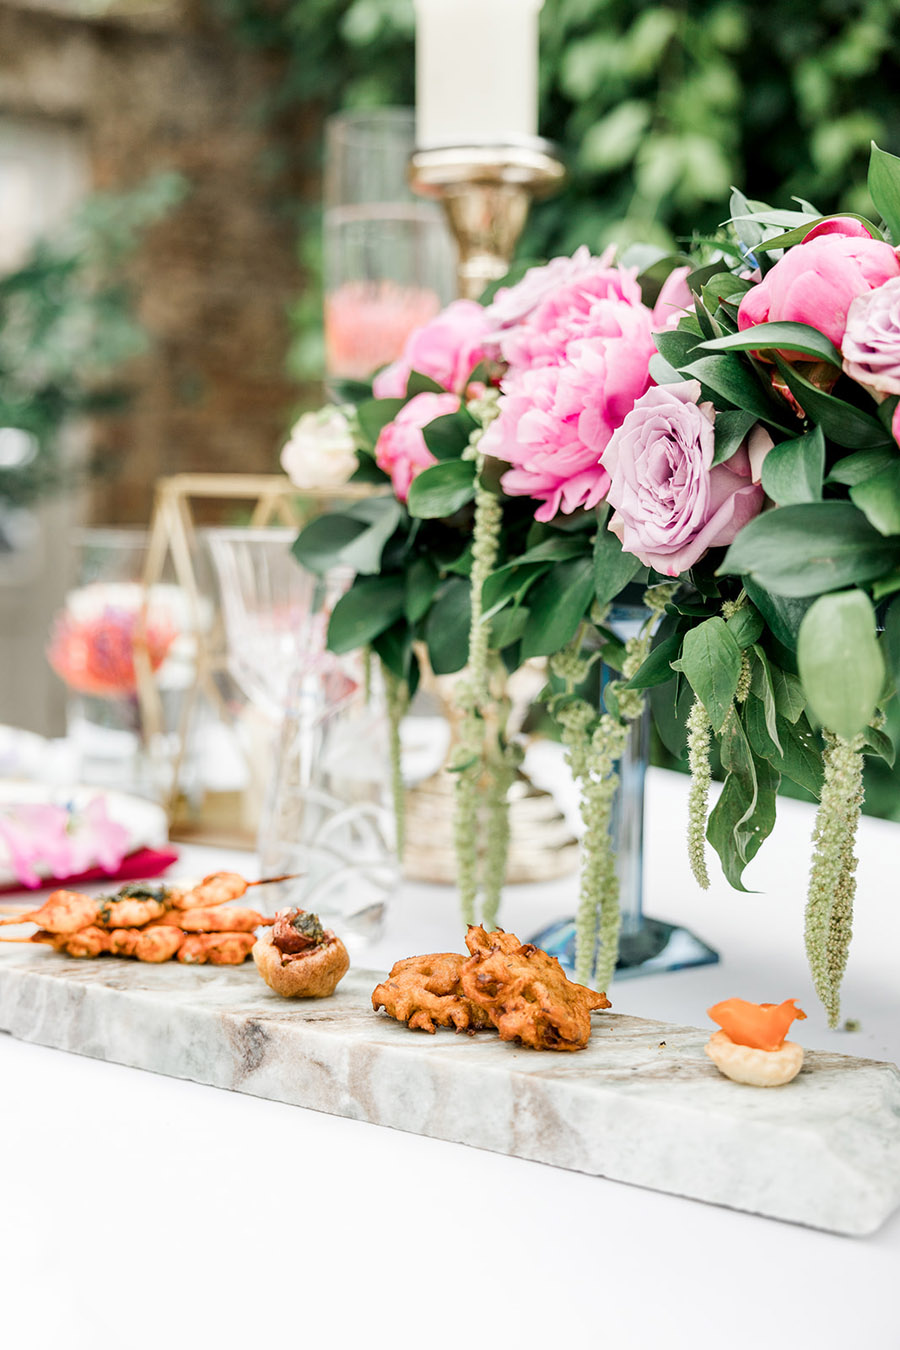 Modern intimate wedding styling inspiration from Slindon House, image credit Kelsie Scully (17)